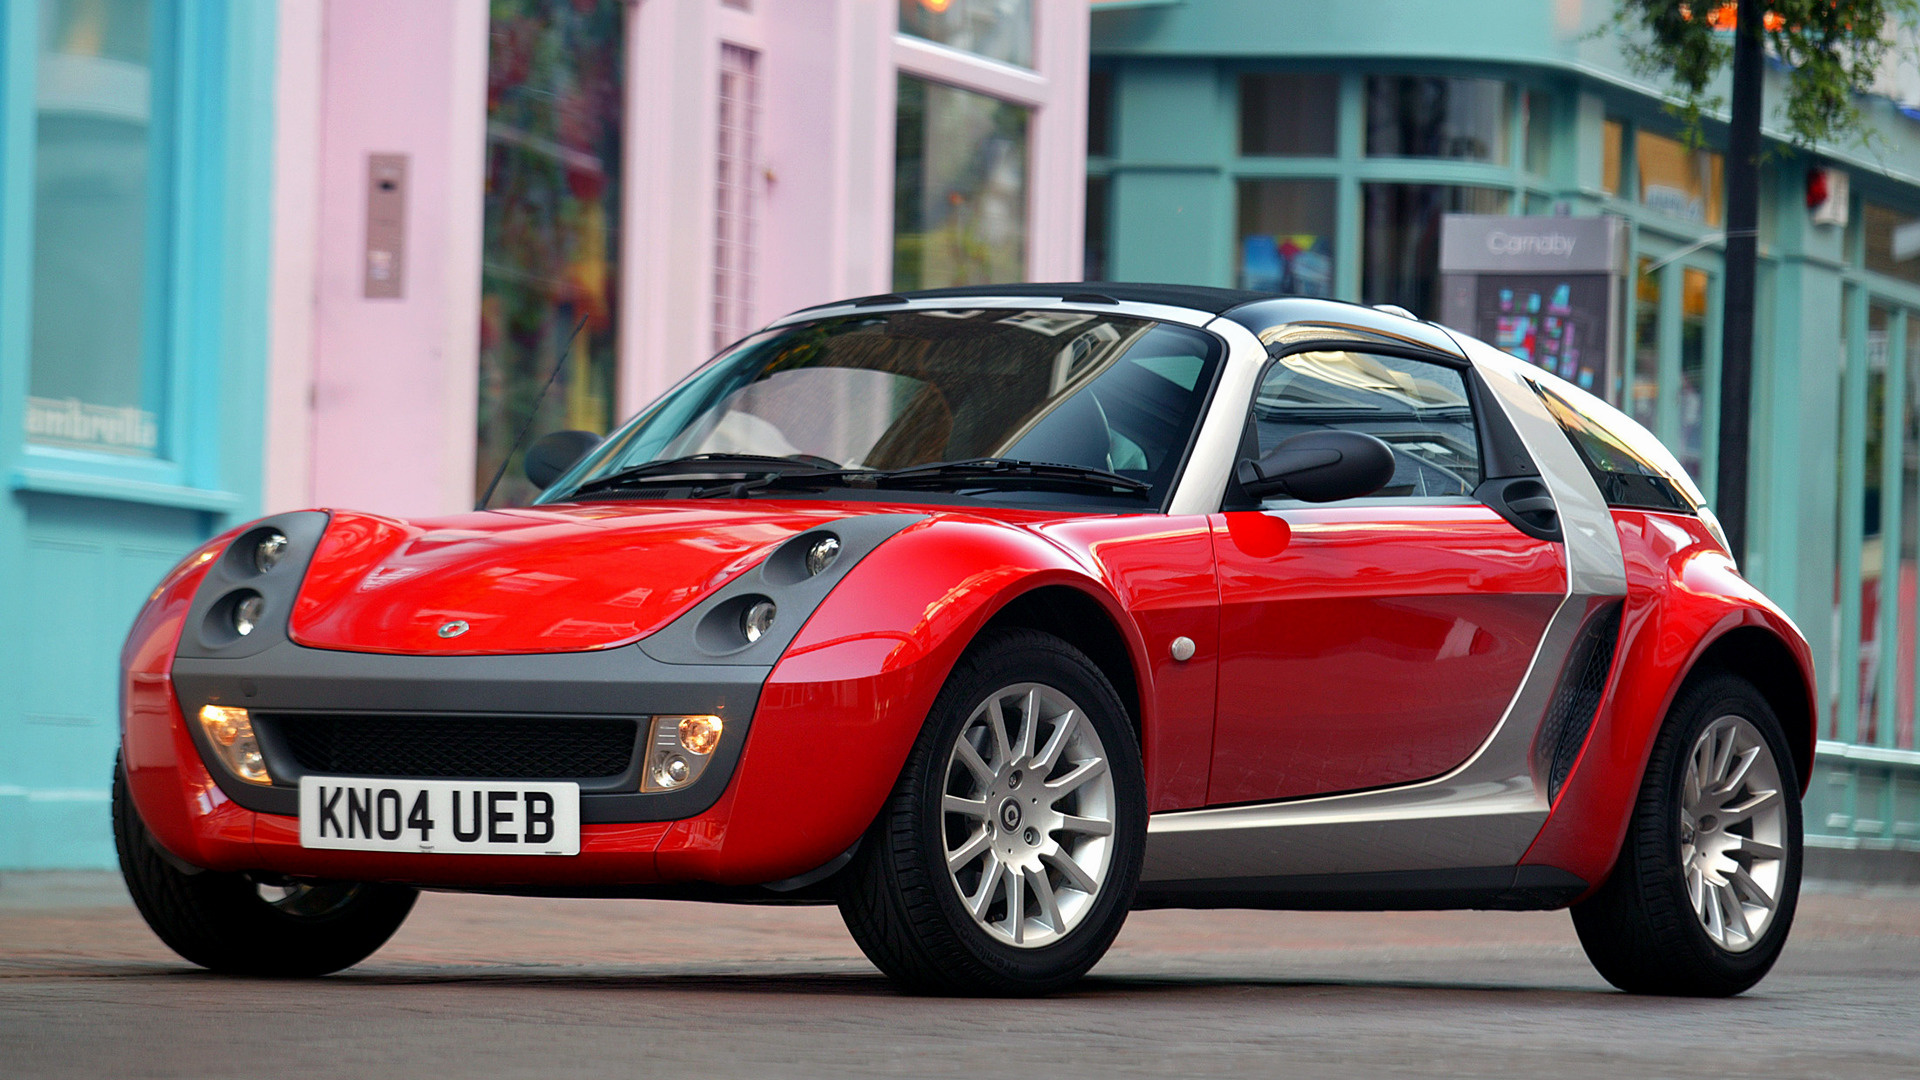 2003 Smart Roadster Coupe photo - 2